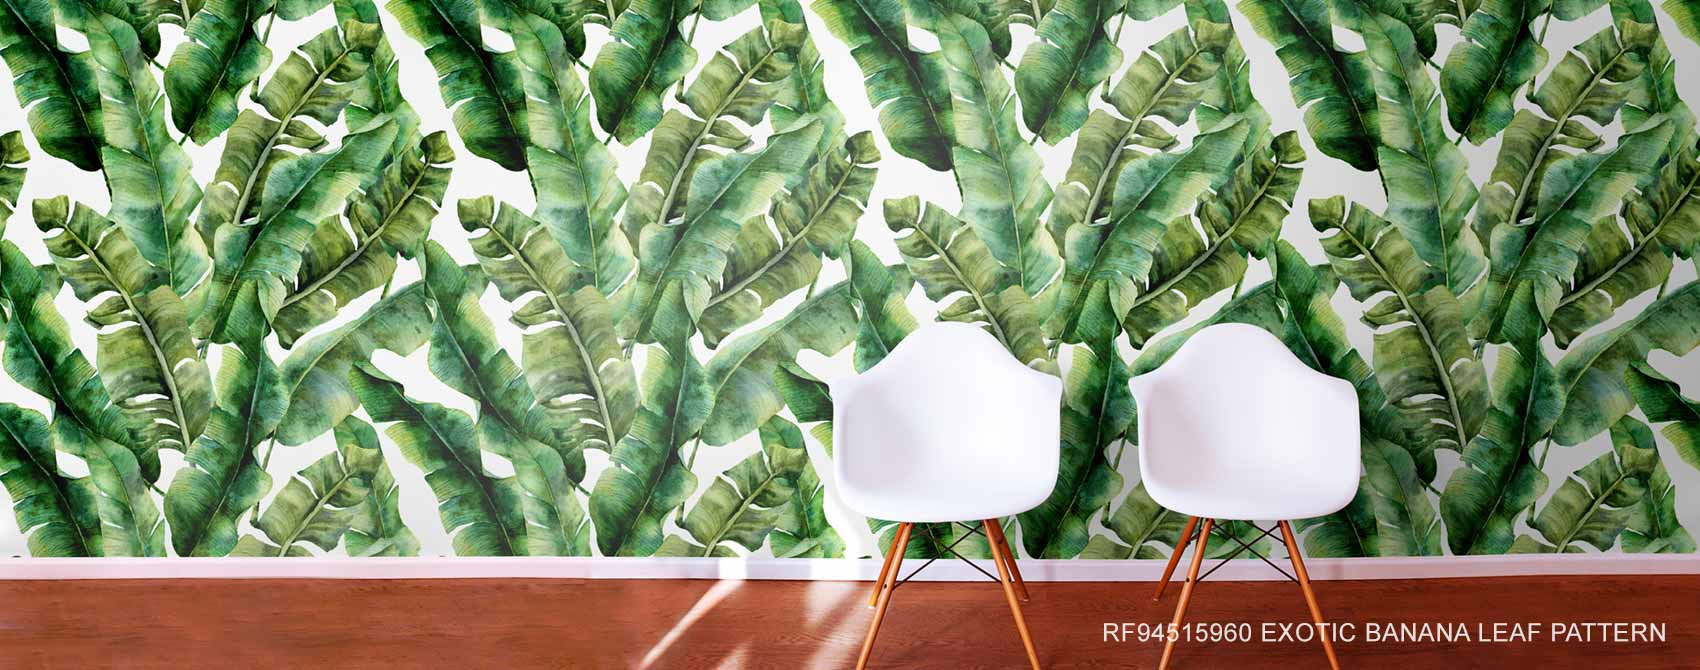 Exotic Banana Leaf Pattern Wallpaper